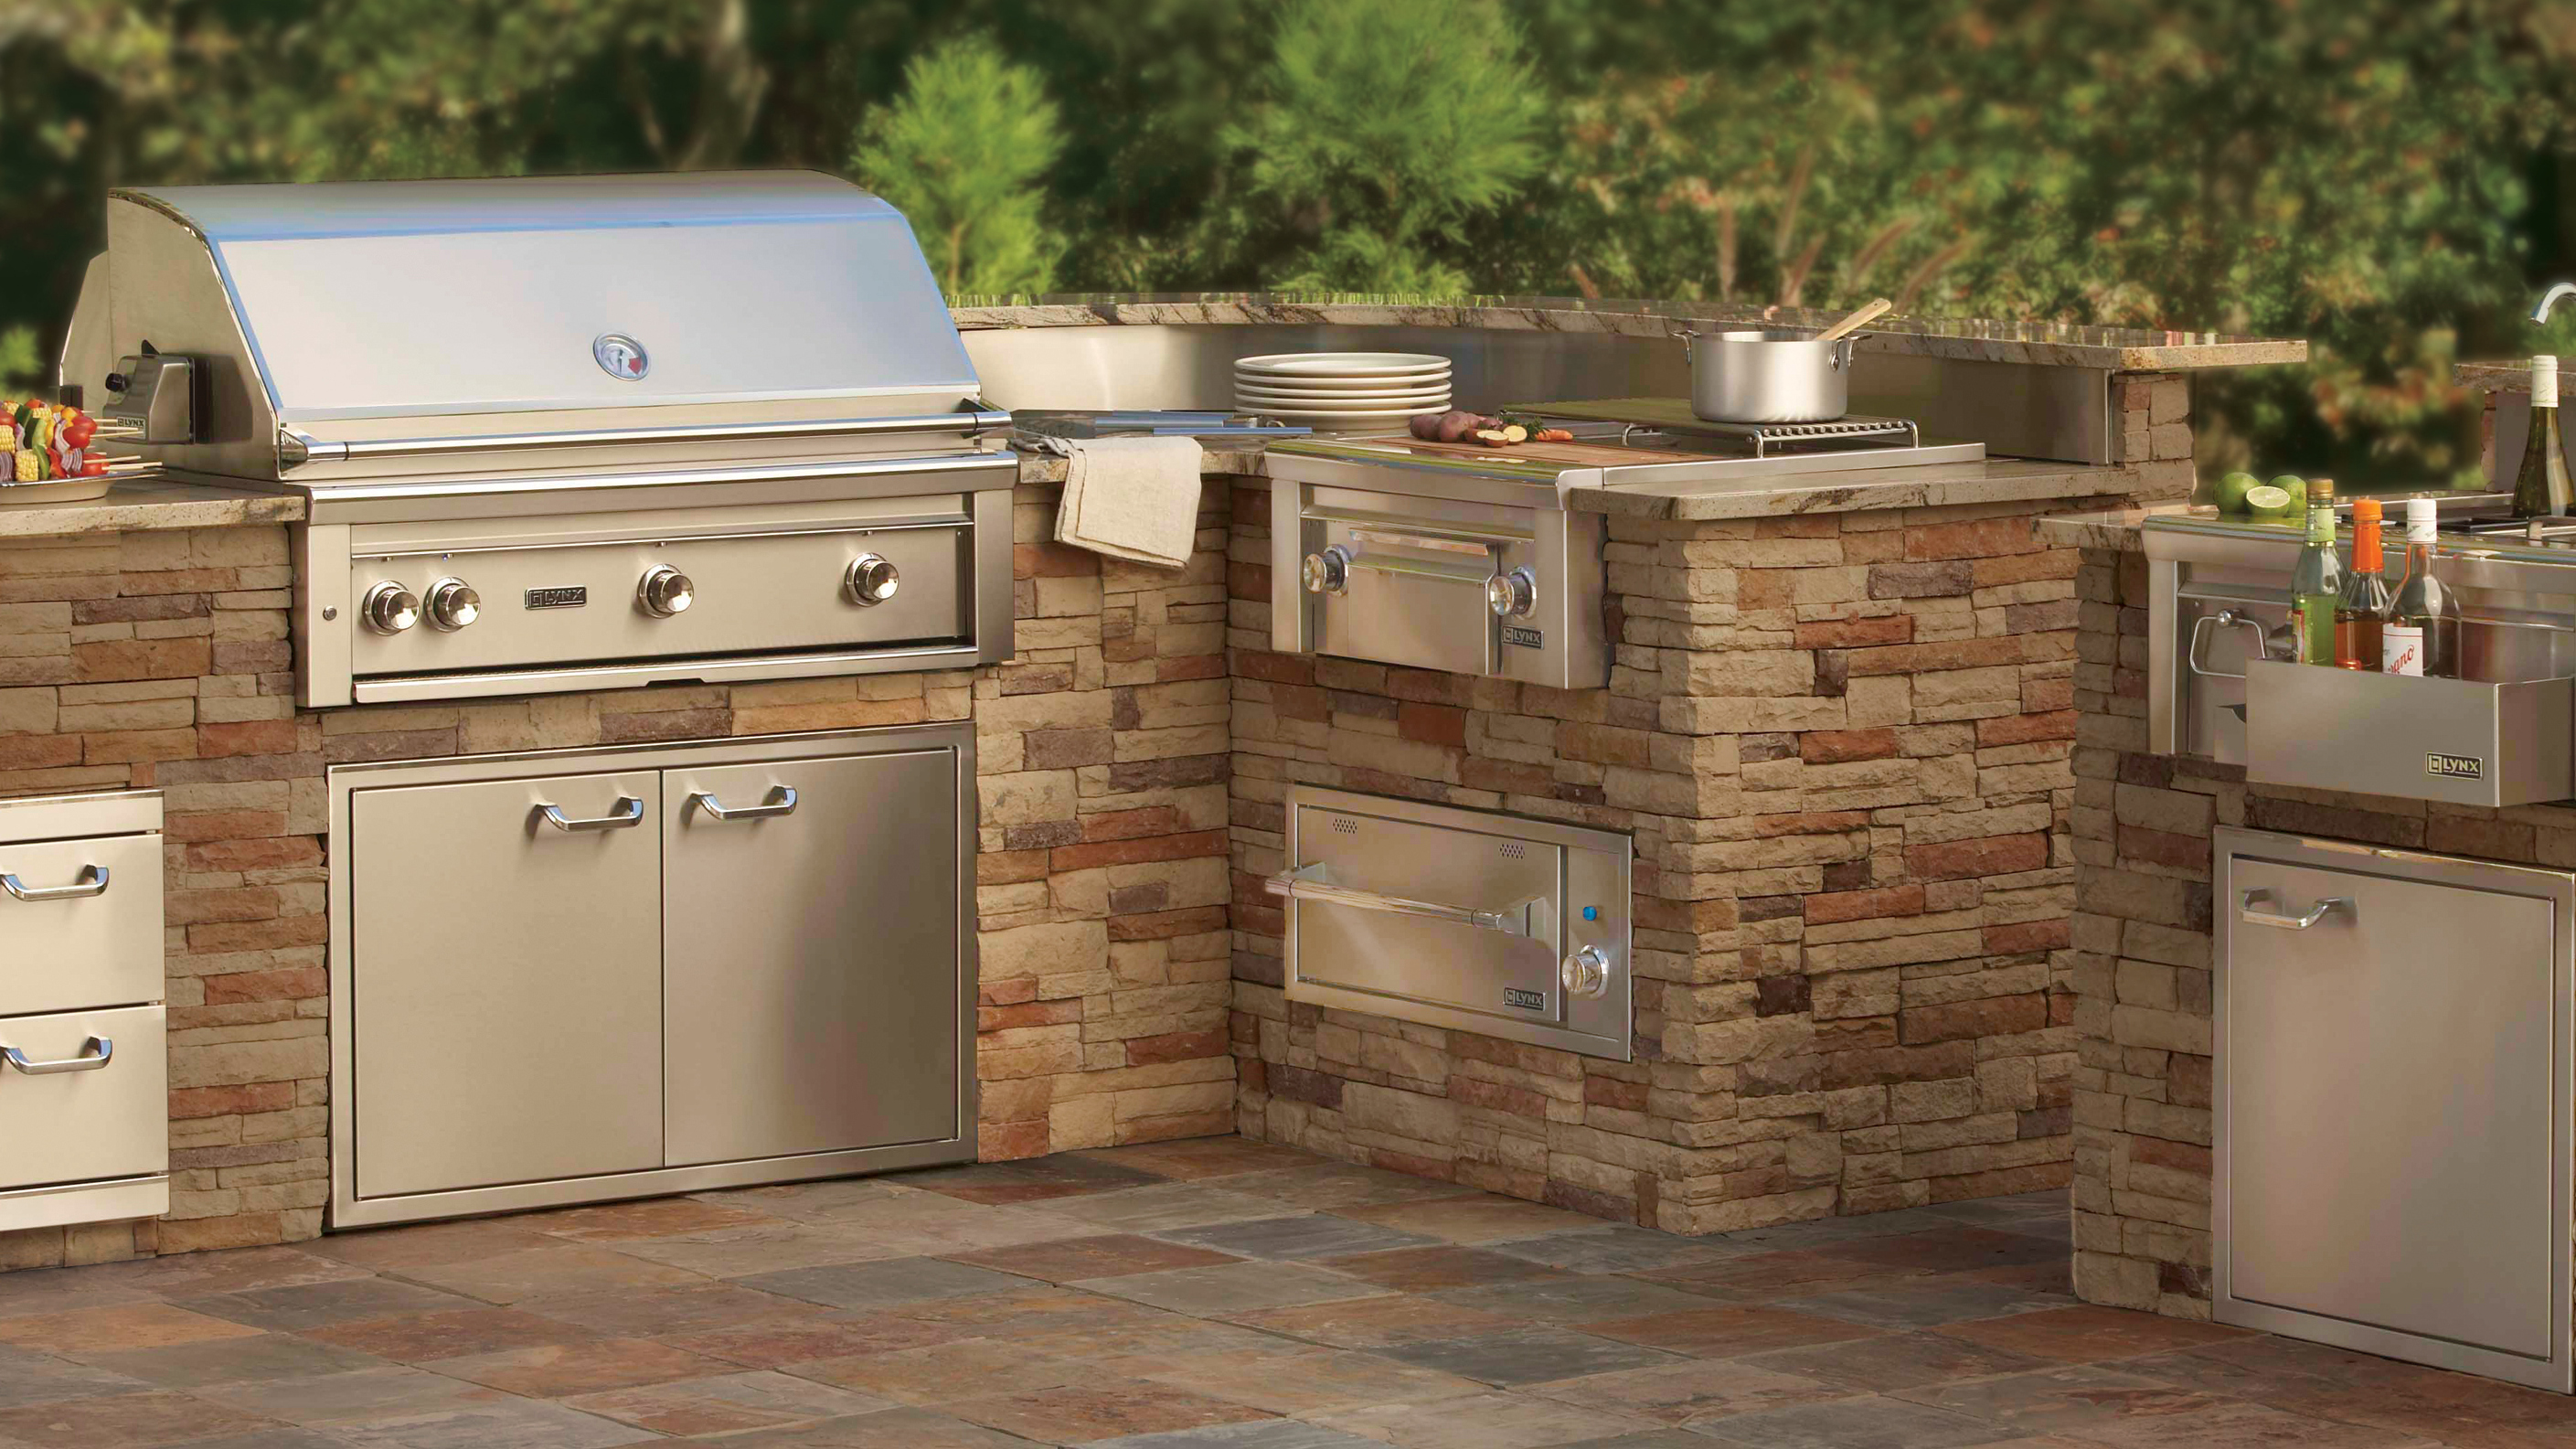 Featured product lynx professional grills castlelite block for Outdoor kitchen barbecue grills